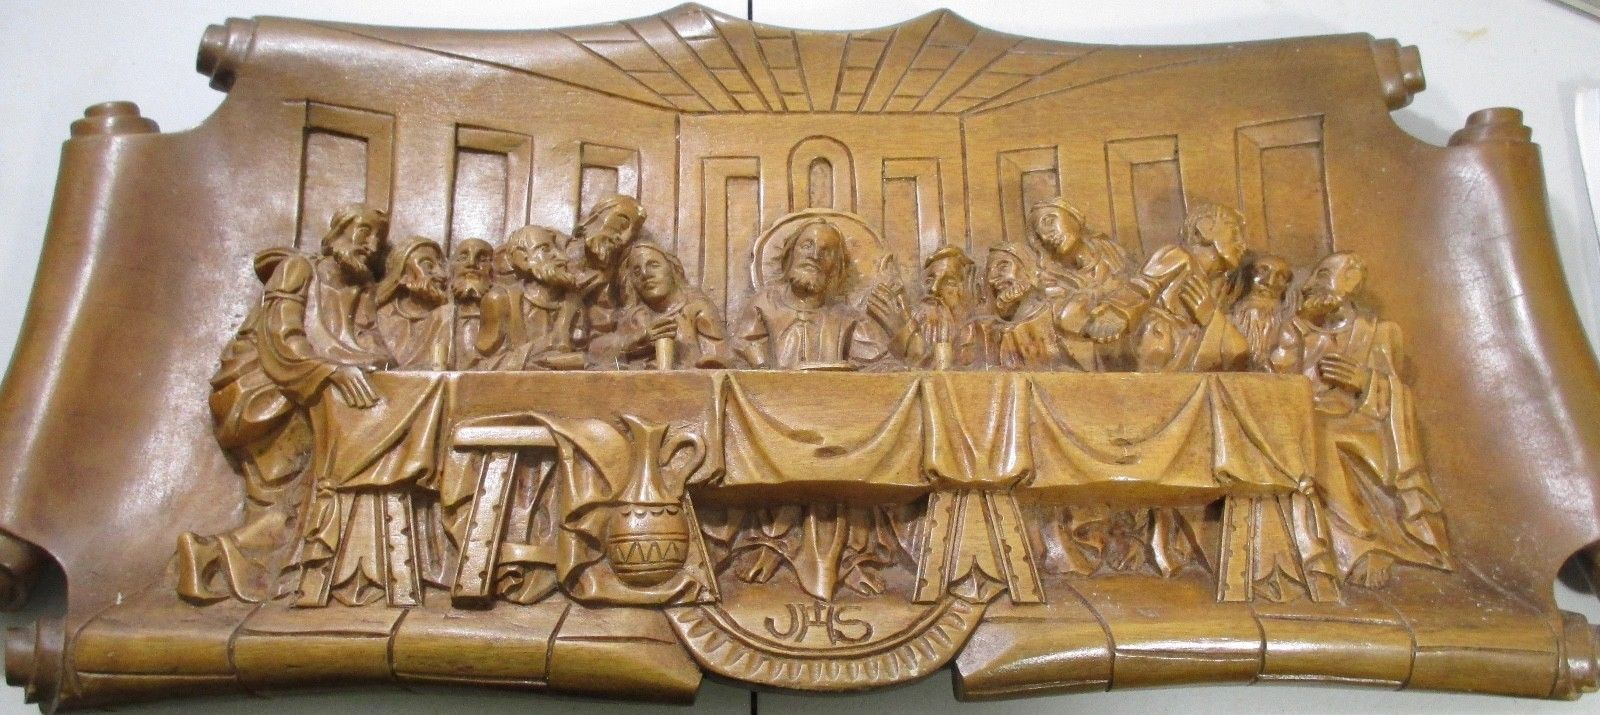 Last supper d art orthodox wood carved religious icon large